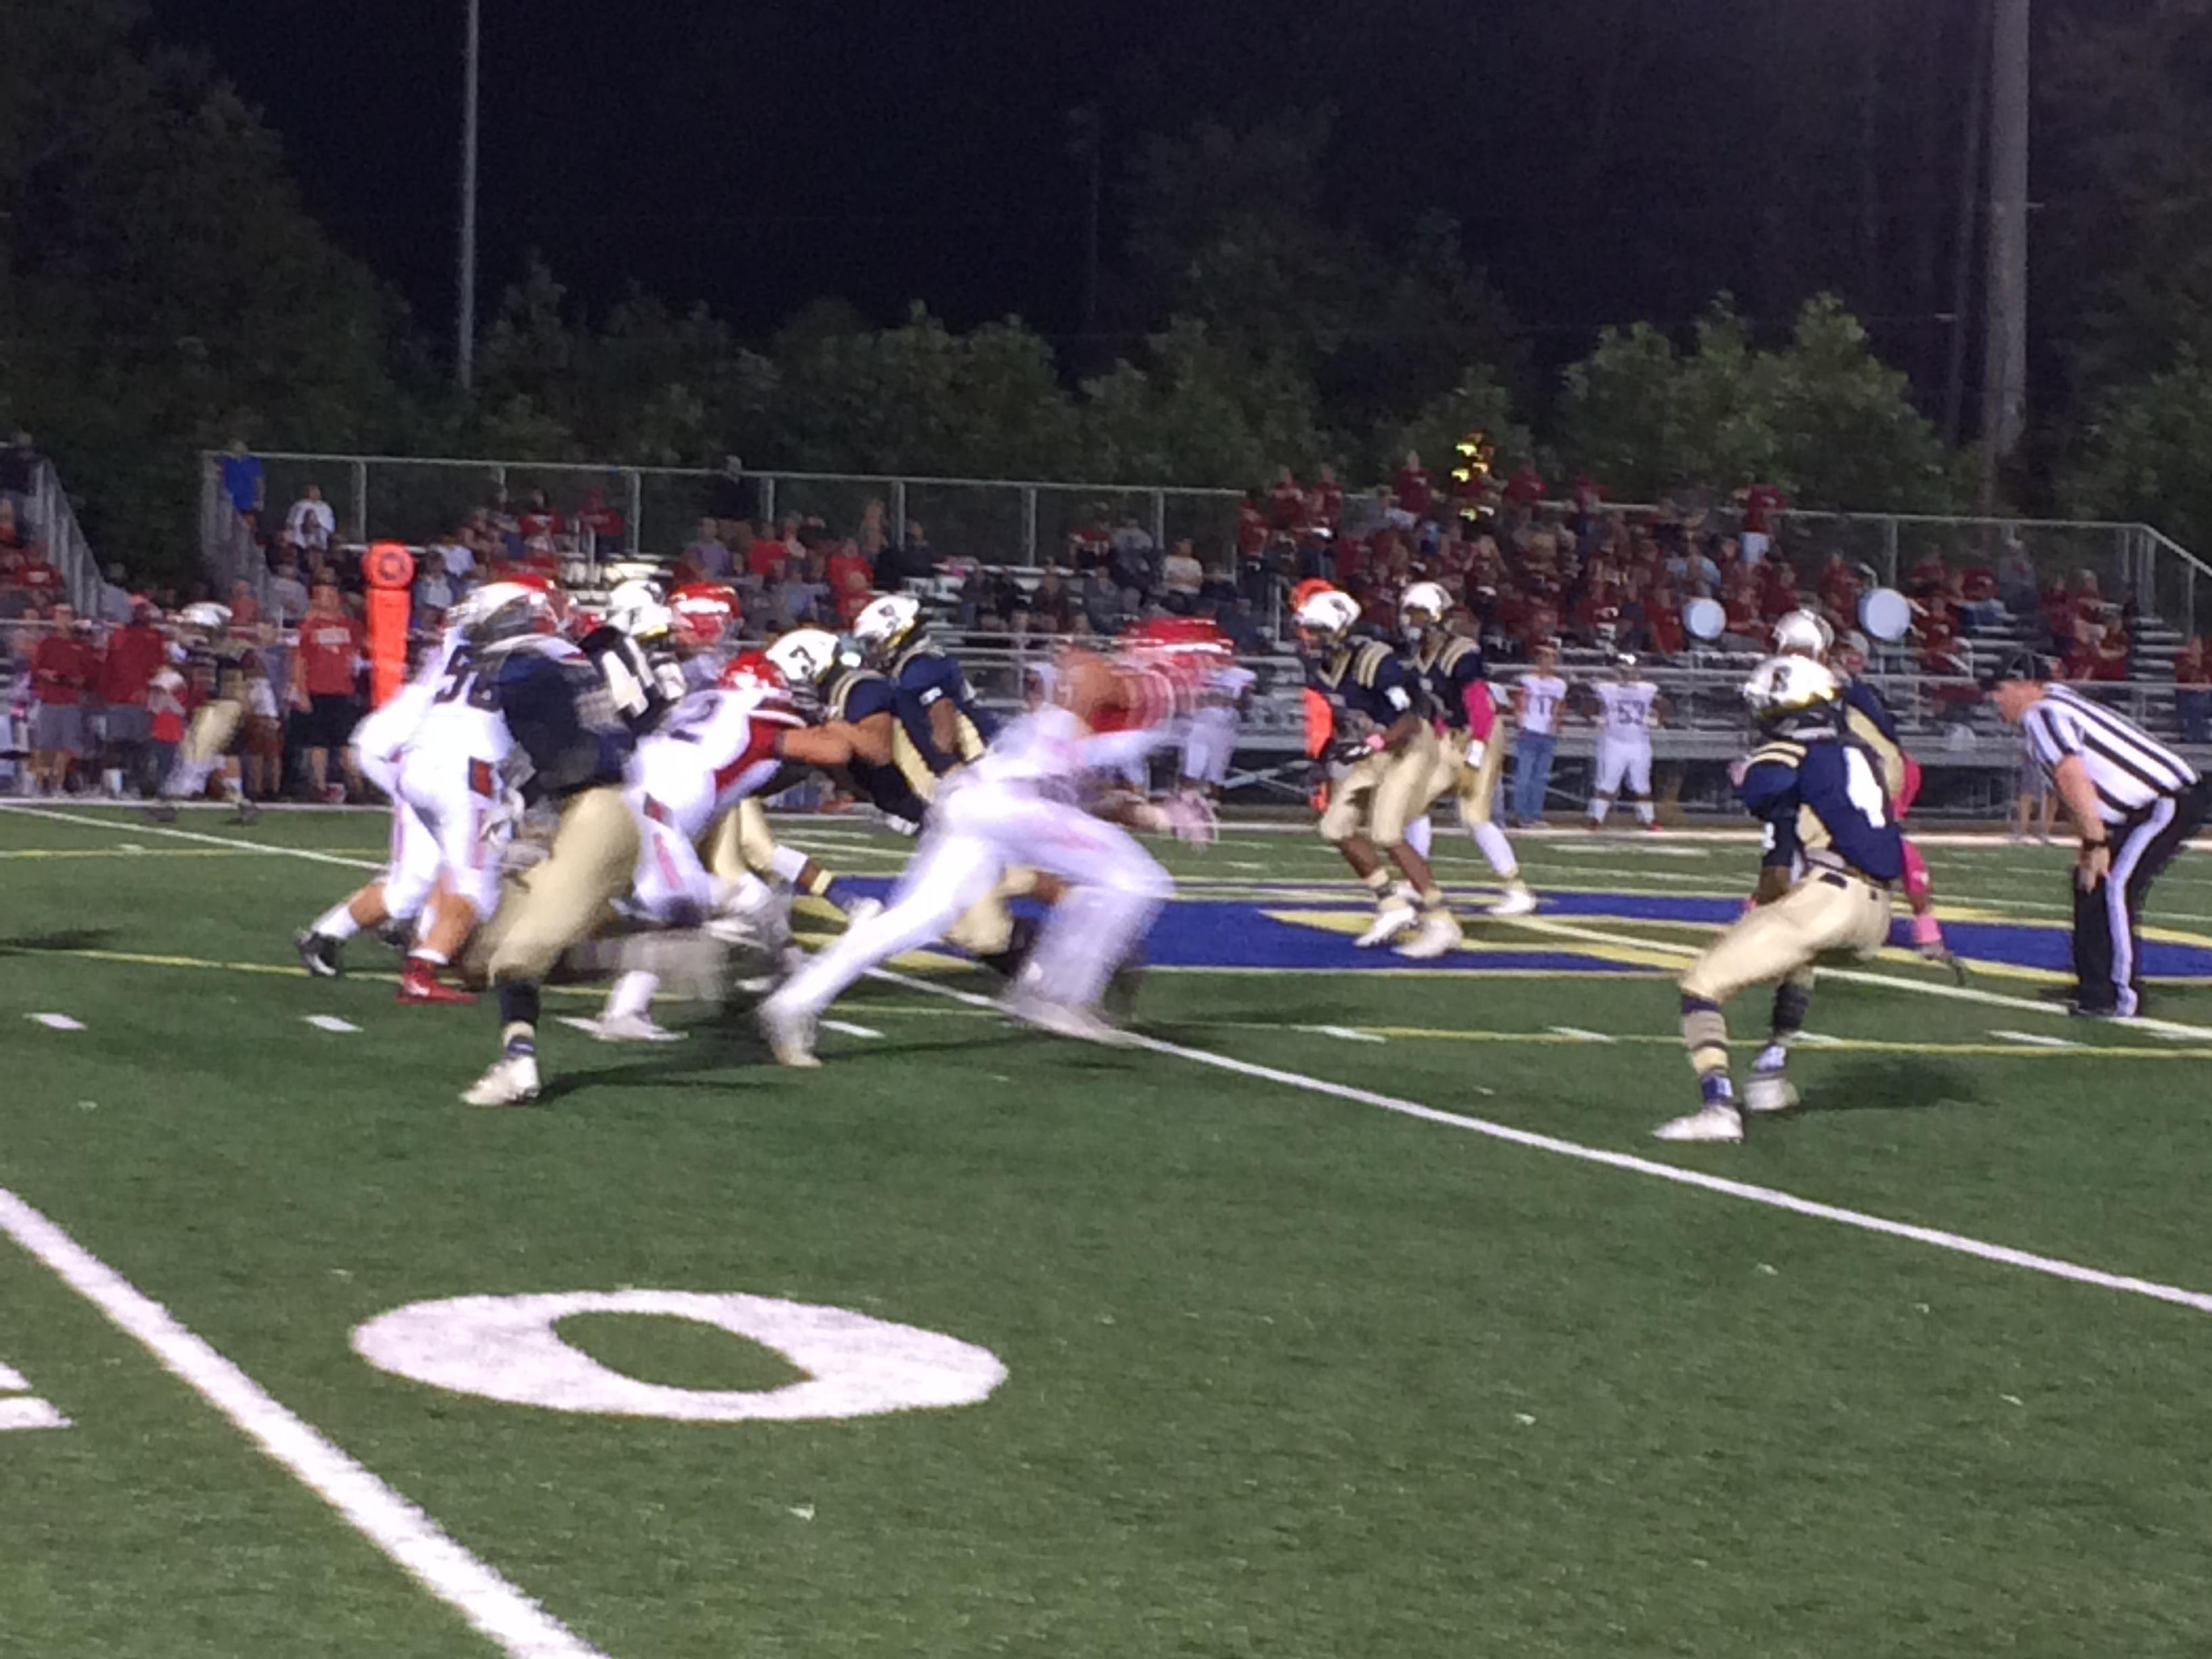 Erwin vs TC Roberson, 10-06-2017 (Photo credit: WLOS Staff)